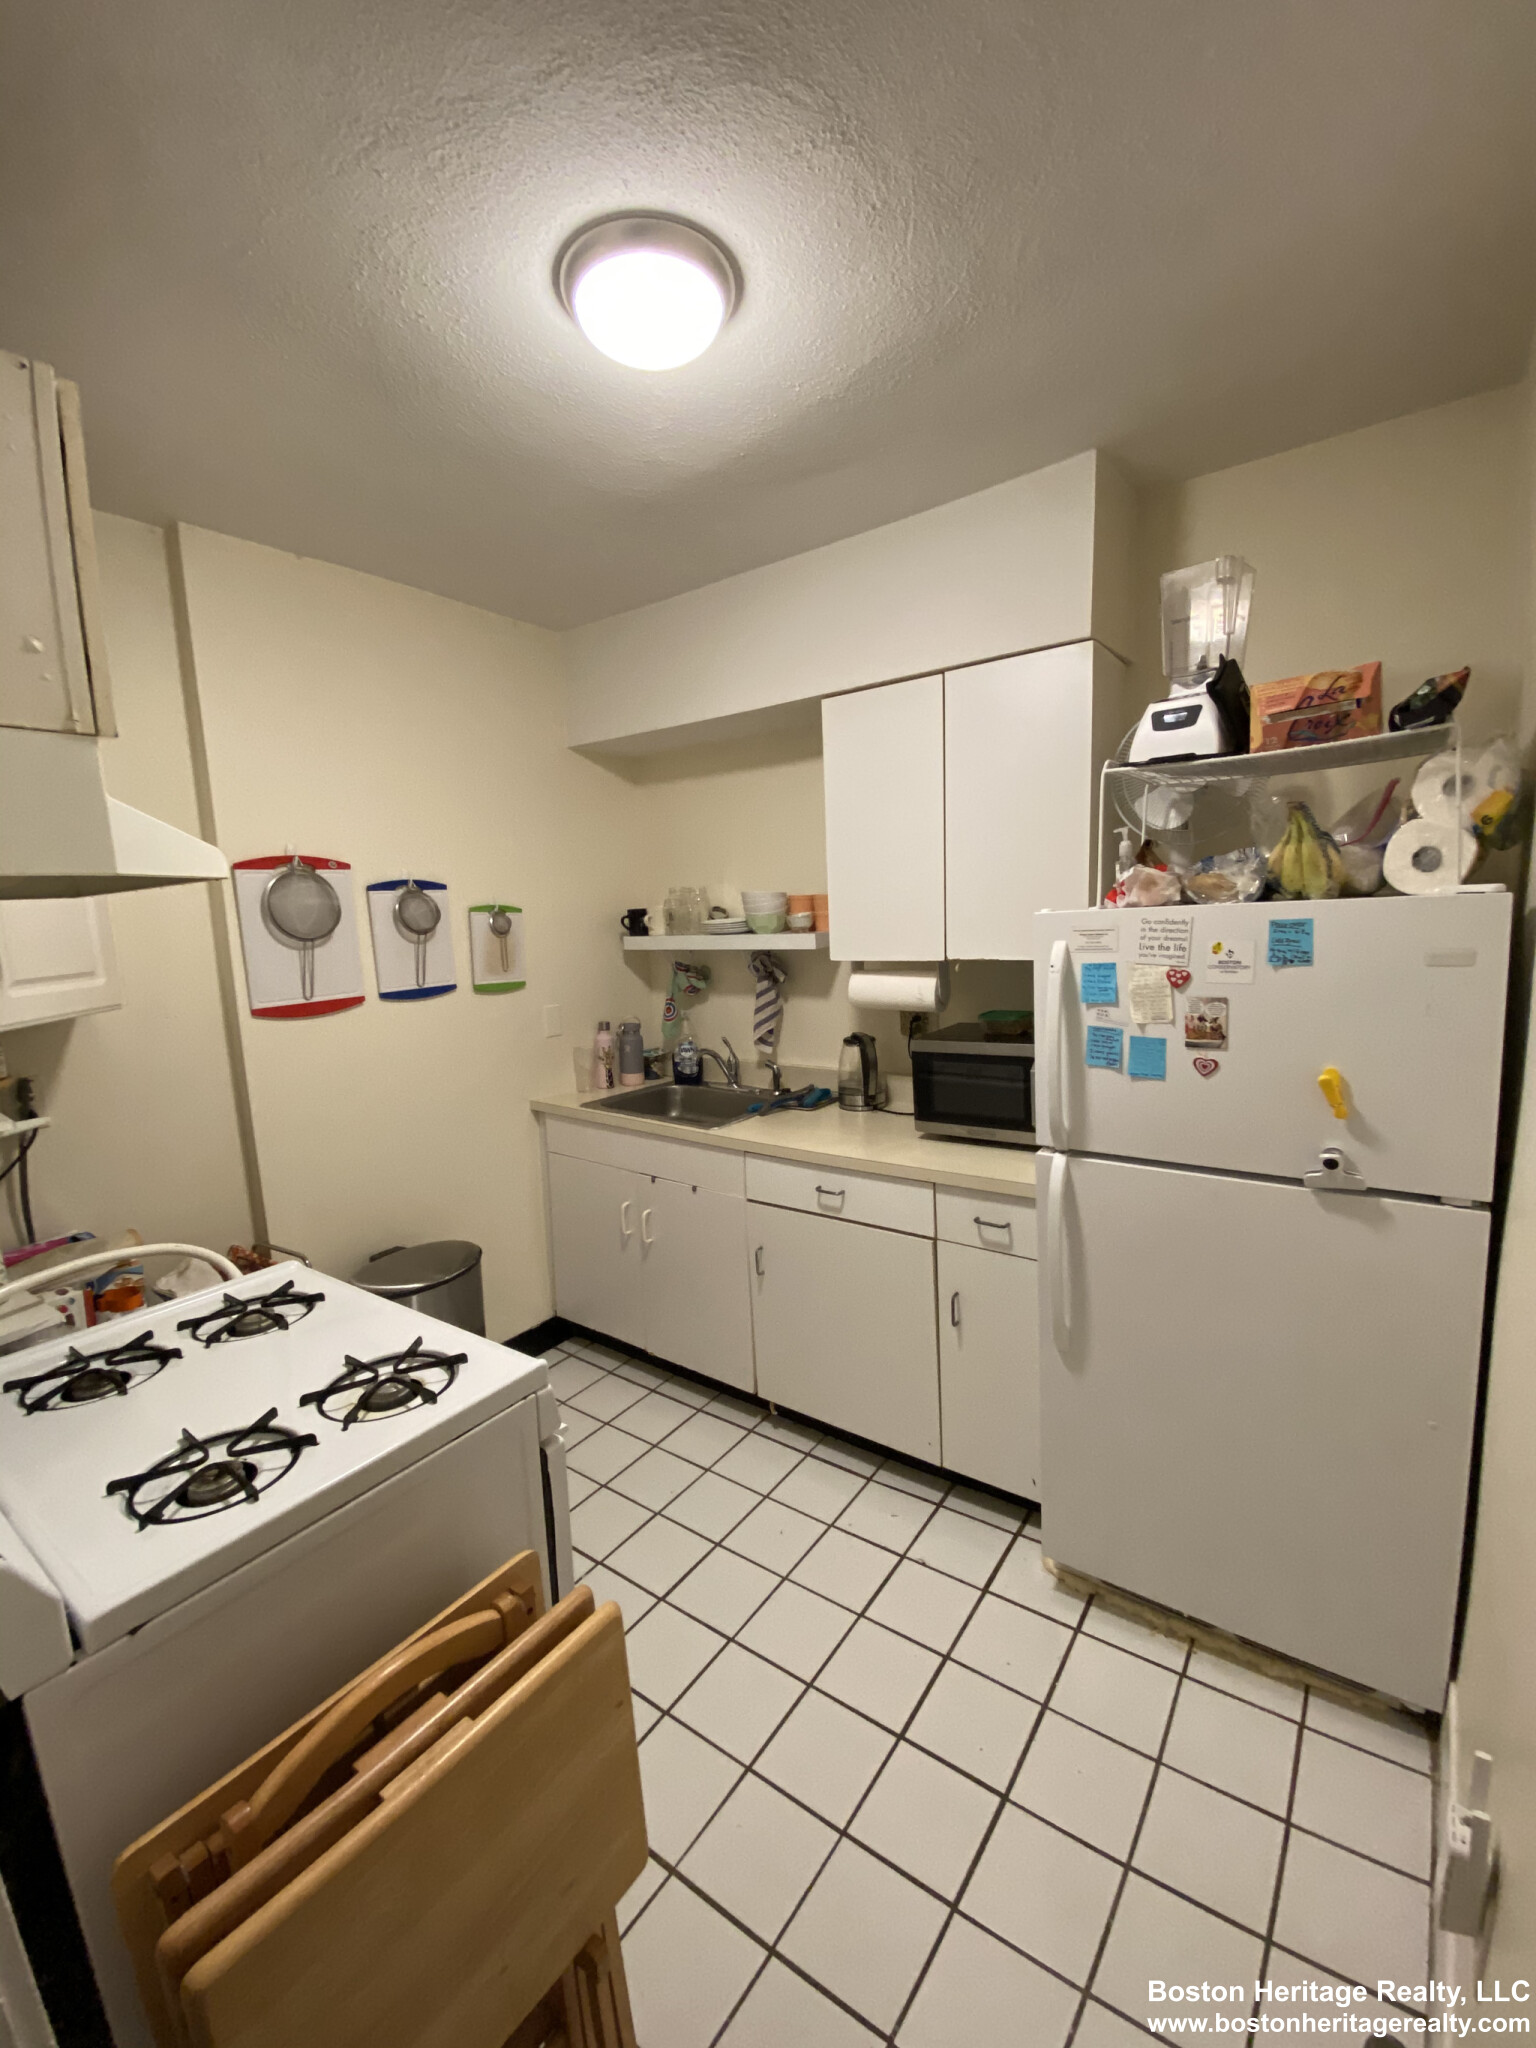 2.8 Beds, 1 Bath apartment in Boston, Fenway for $3,100